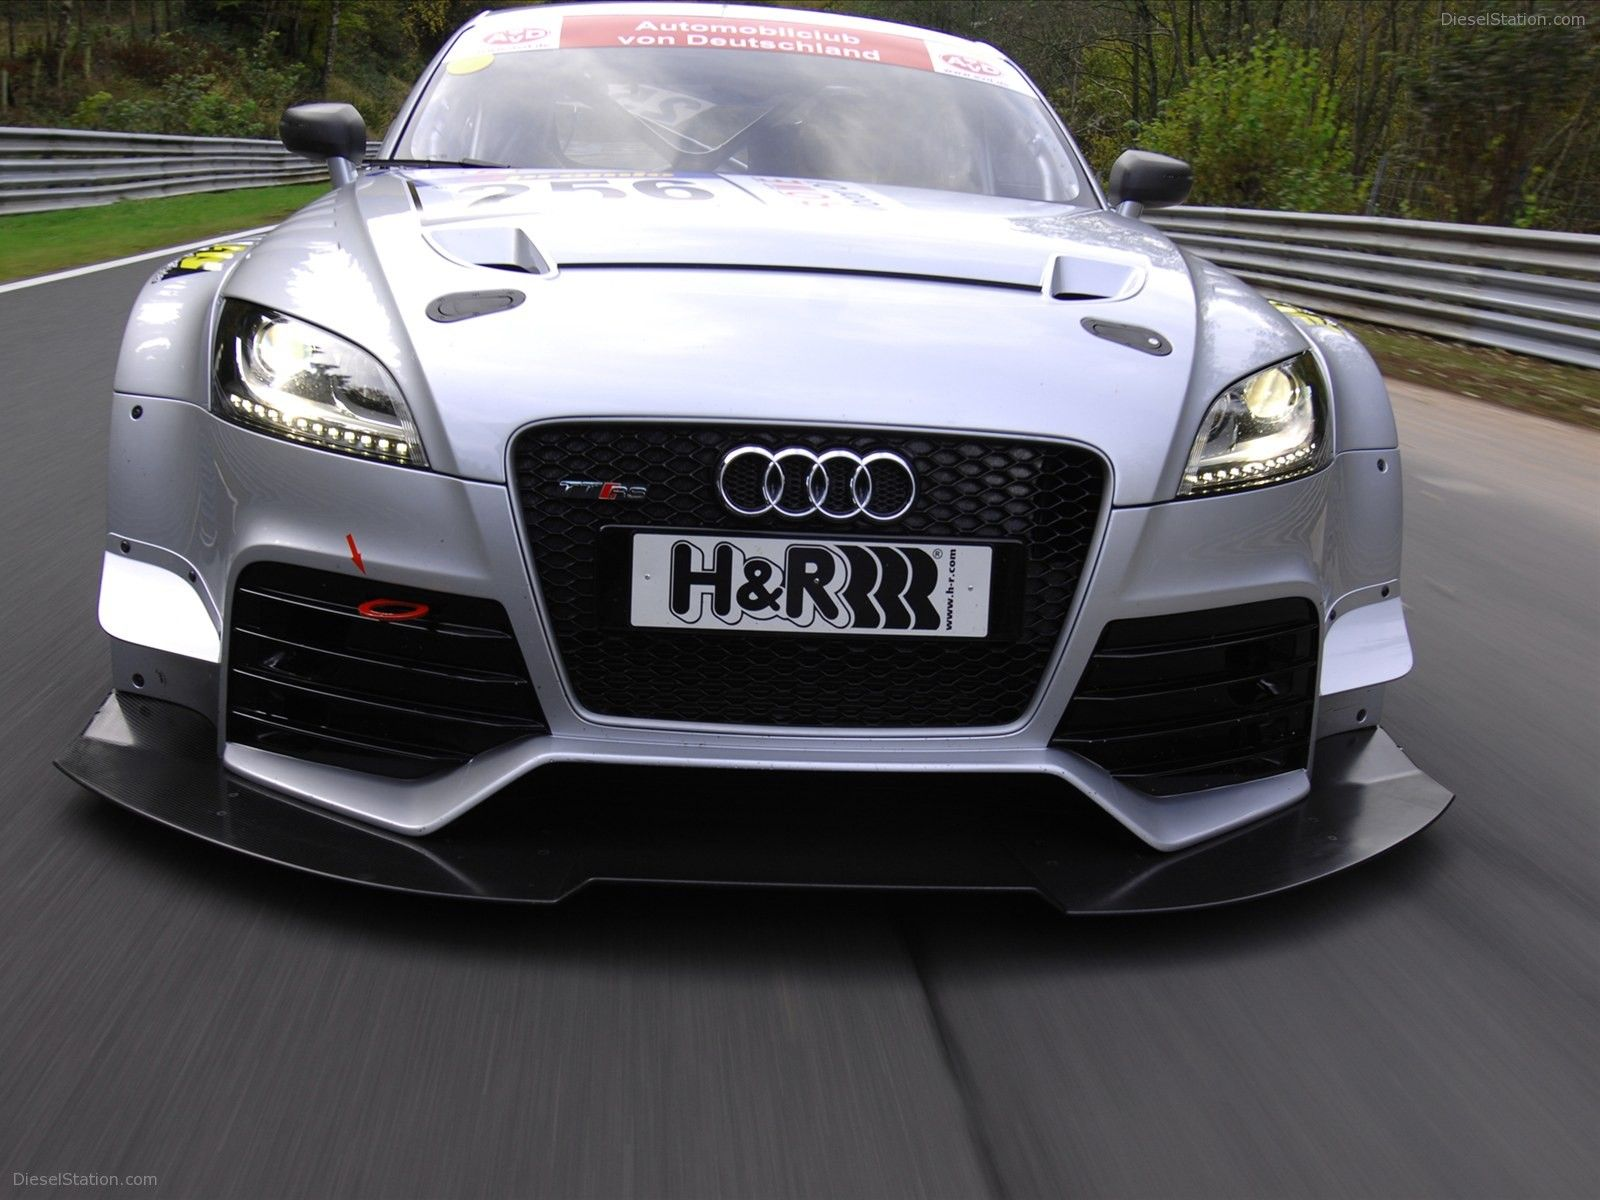 Audi TT RS Racing Car Version Audi TT MK Pinterest - Audi car versions